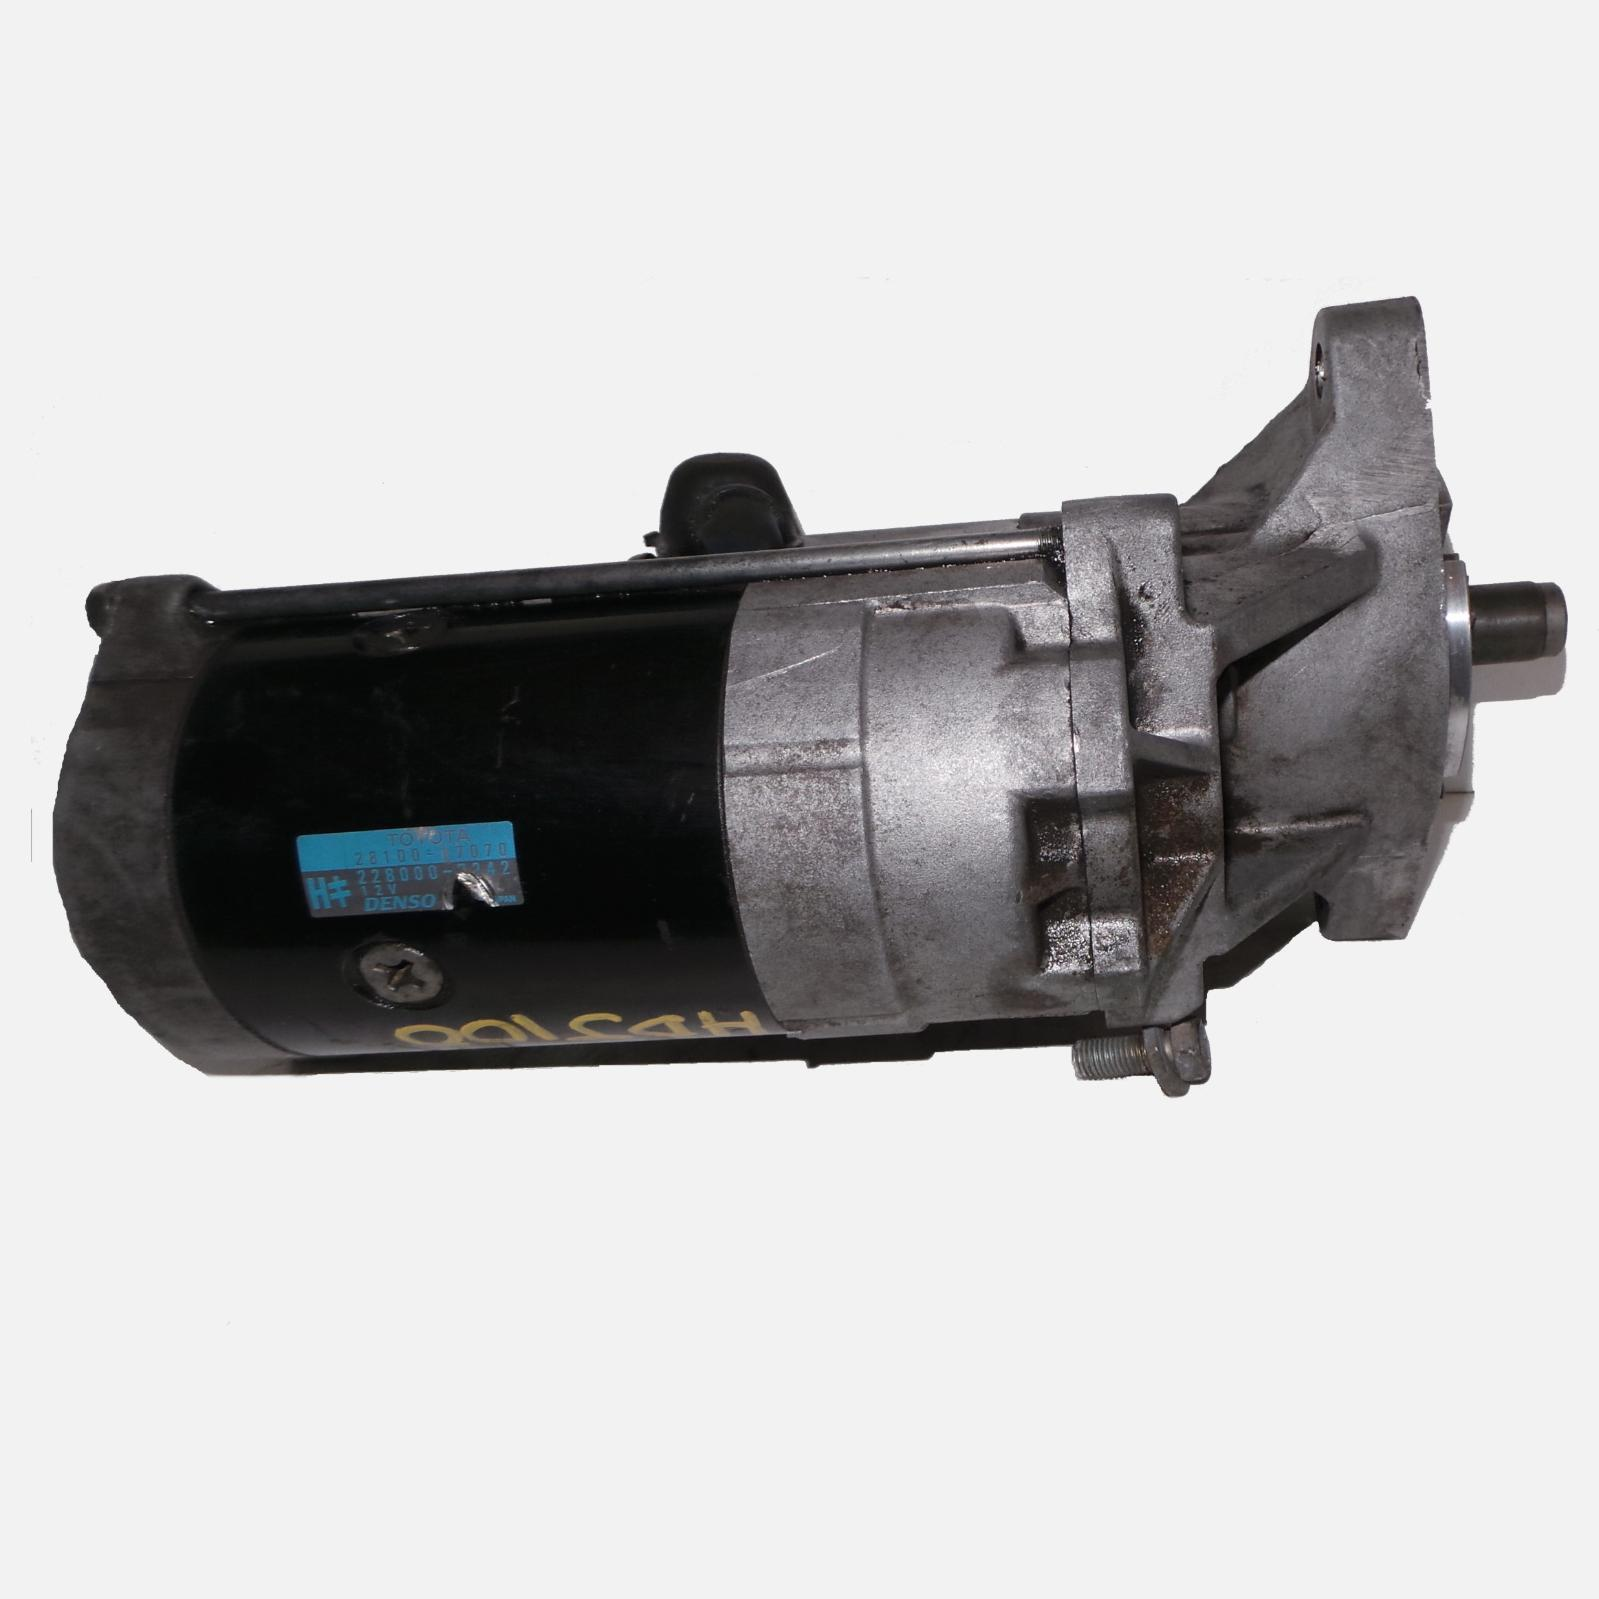 TOYOTA LANDCRUISER, Starter, 78/80/100 SERIES, DIESEL, 4.2, 1HD-FT, TURBO, 01/95-10/07